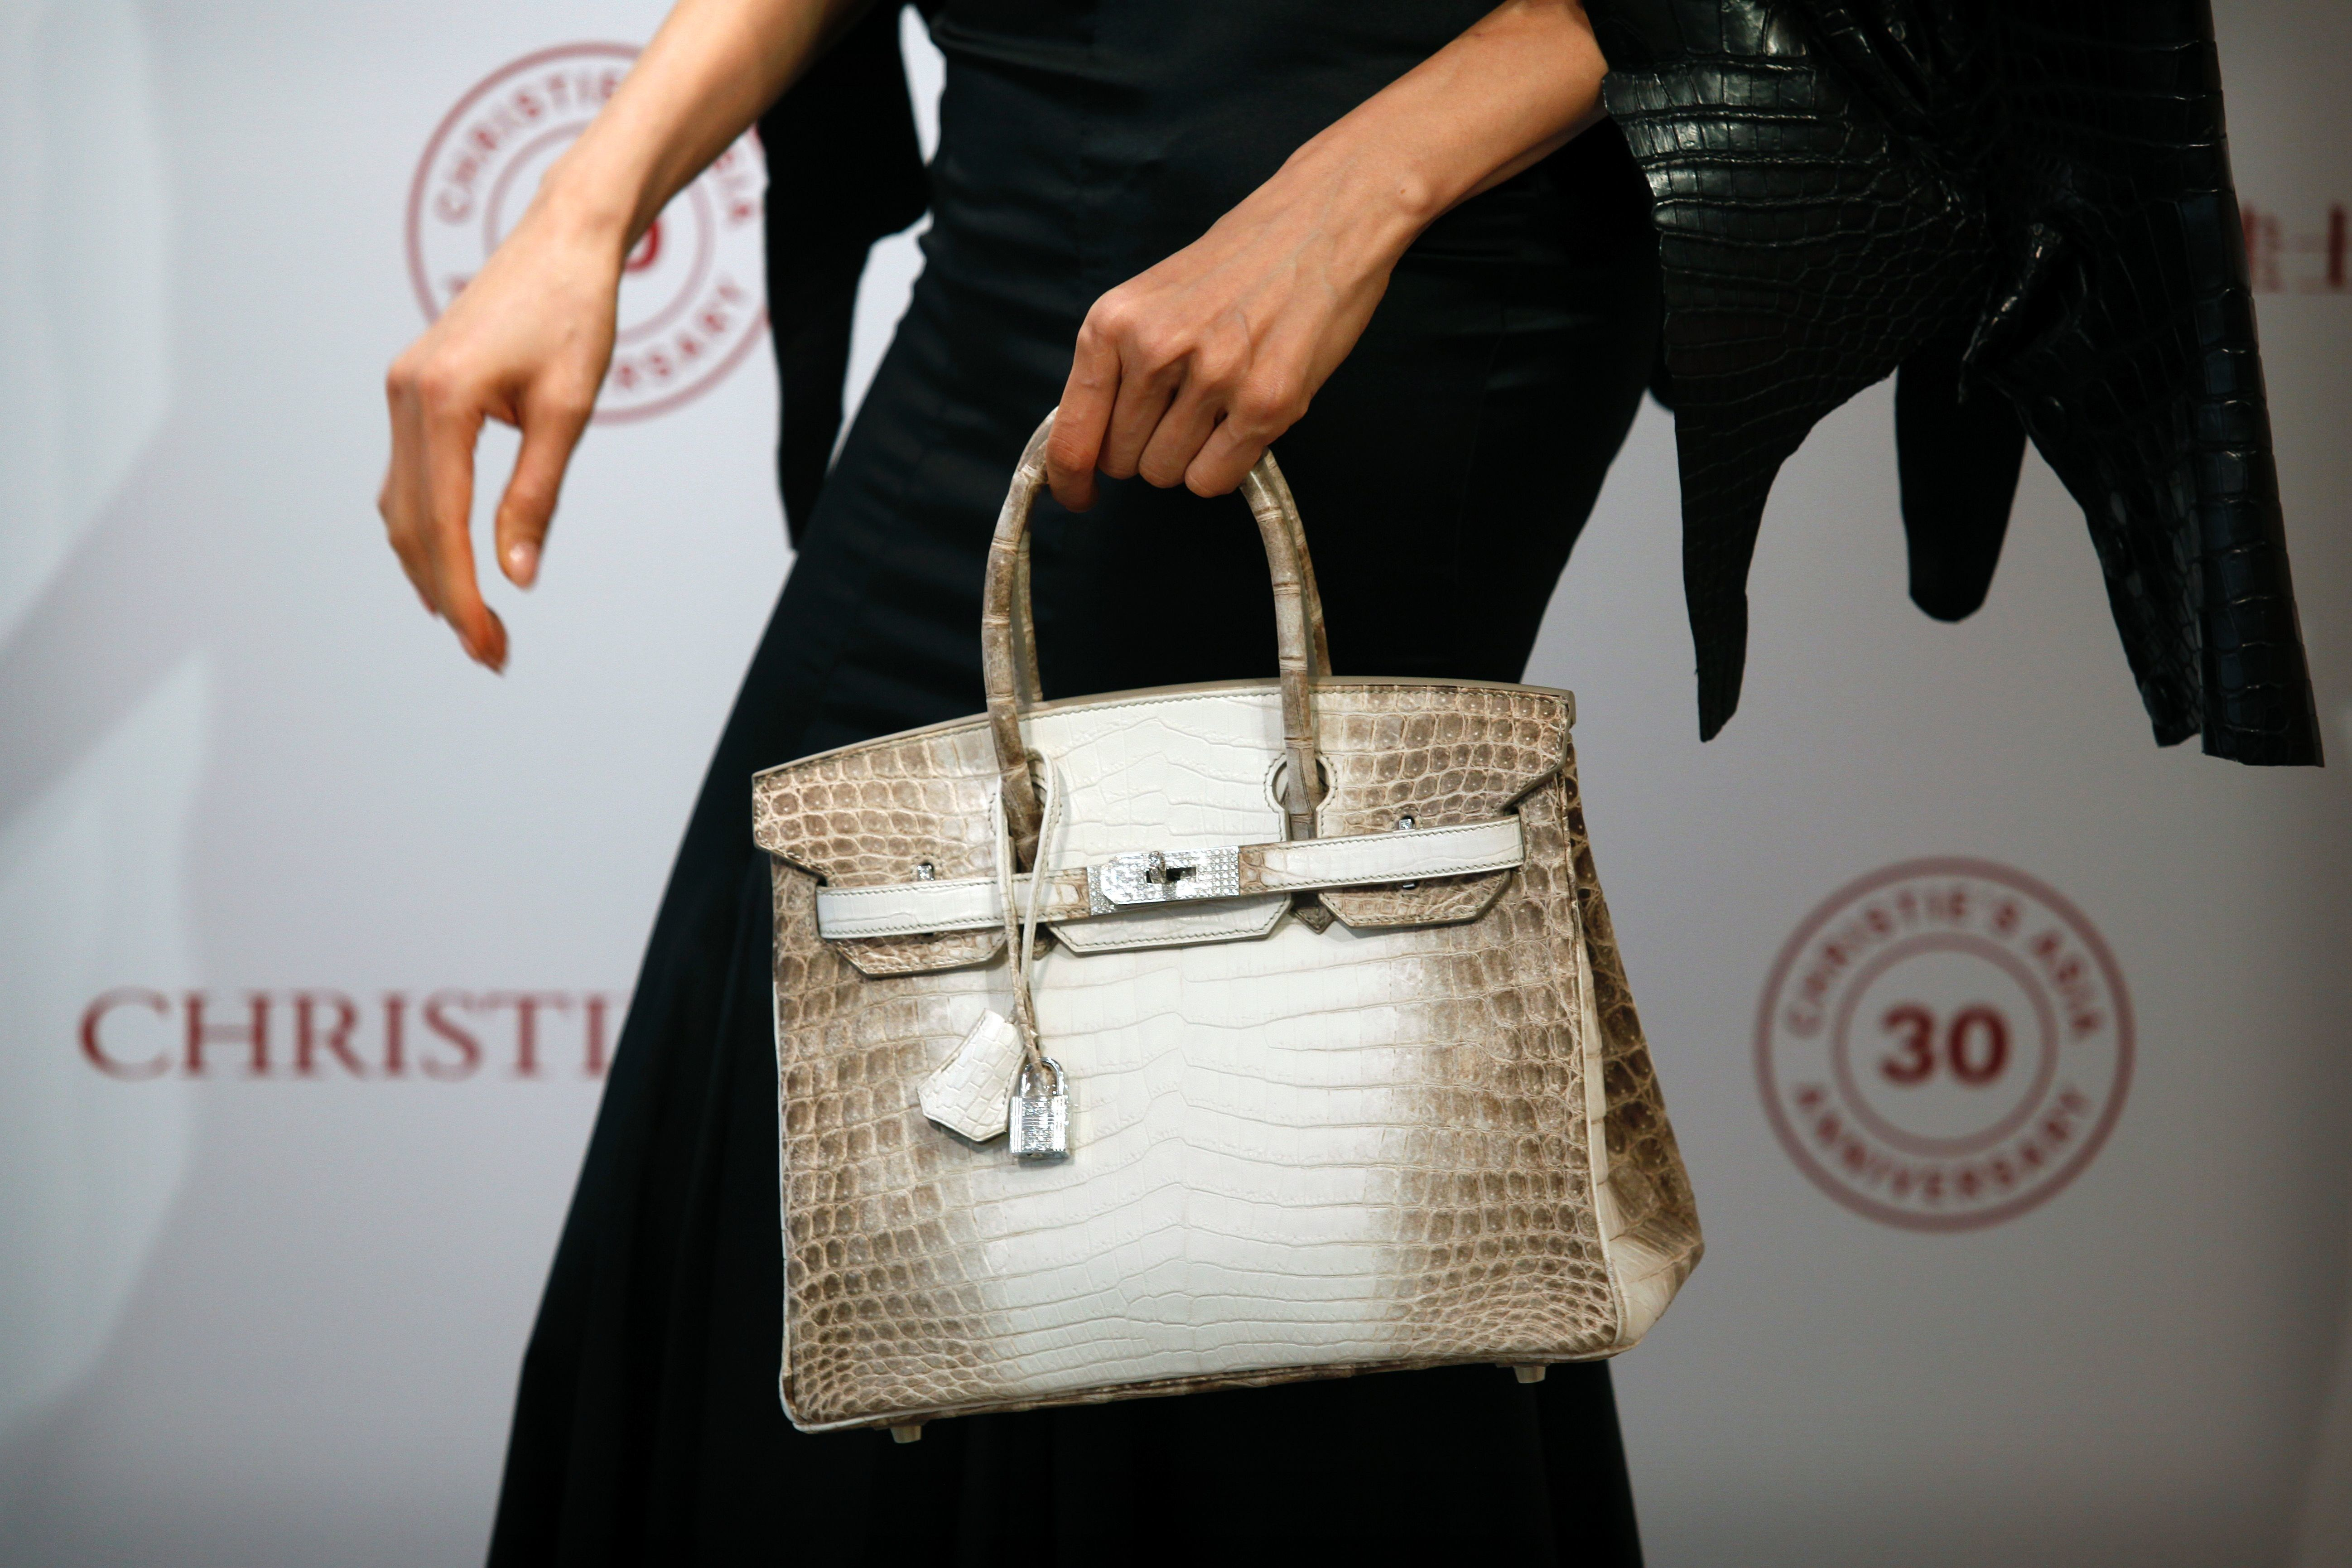 Christie S Just Sold The Most Expensive Handbag Ever A 300 000 Birkin Expensive Handbags Most Expensive Handbags Most Expensive Bag